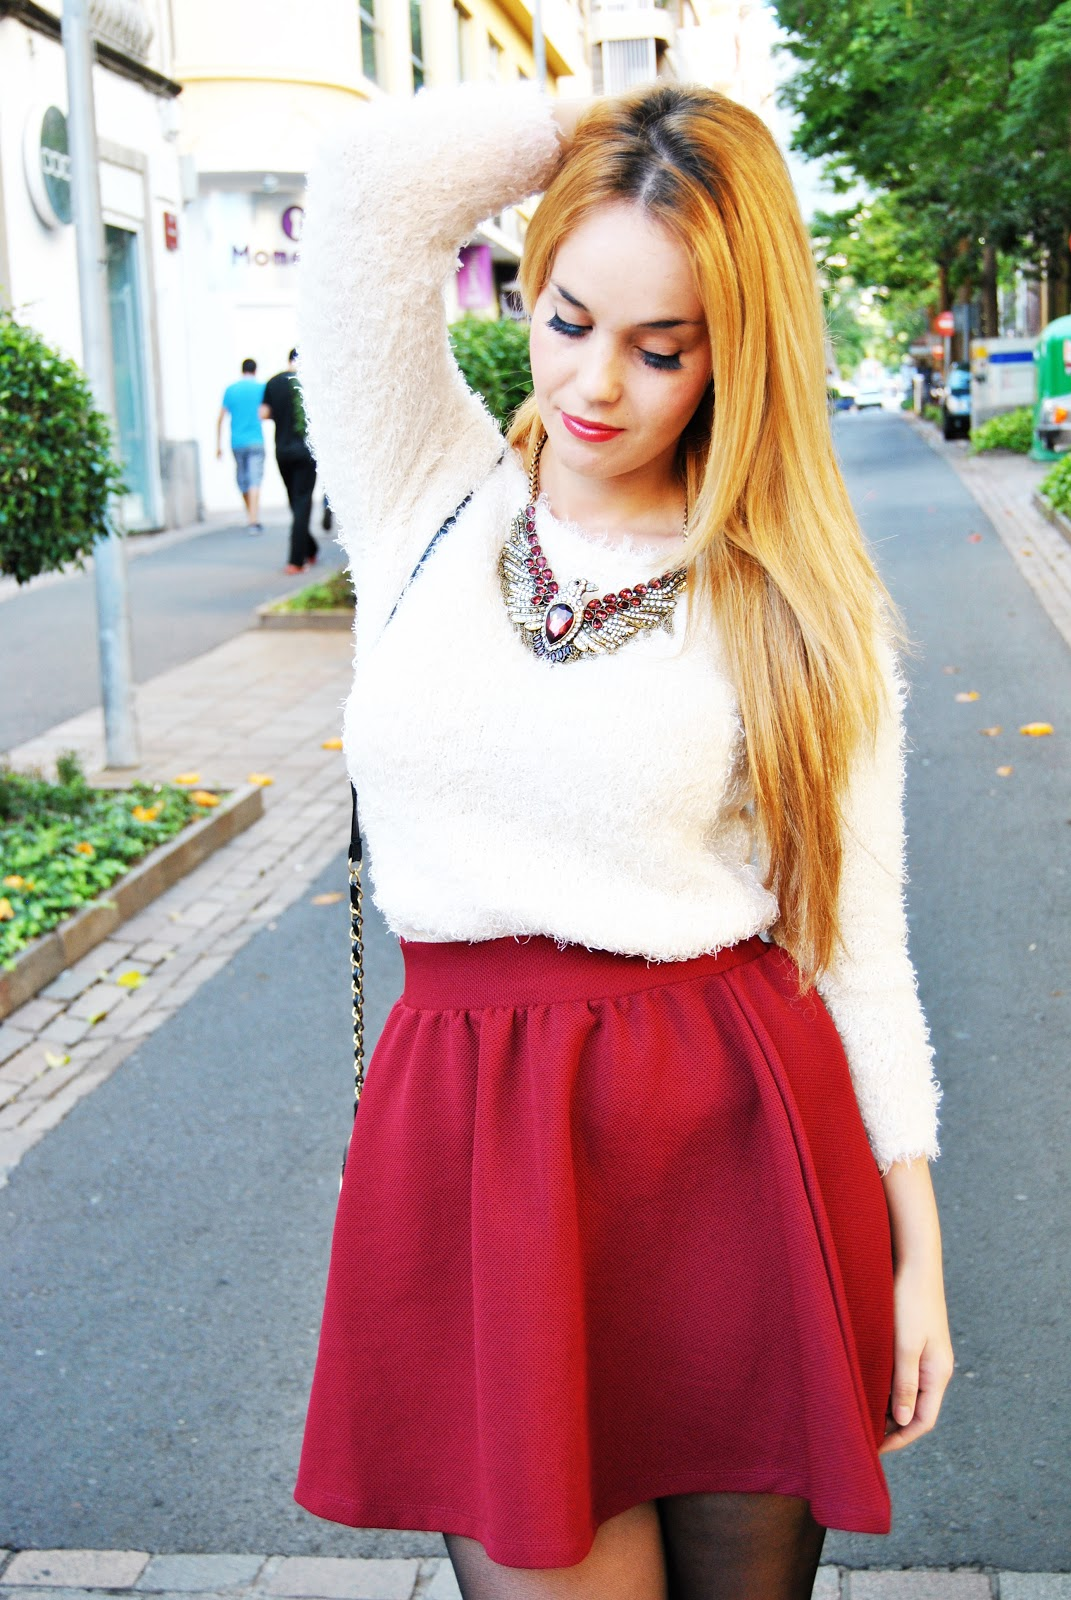 nery hdez, zara necklace, collar aguila de zara, burdeos